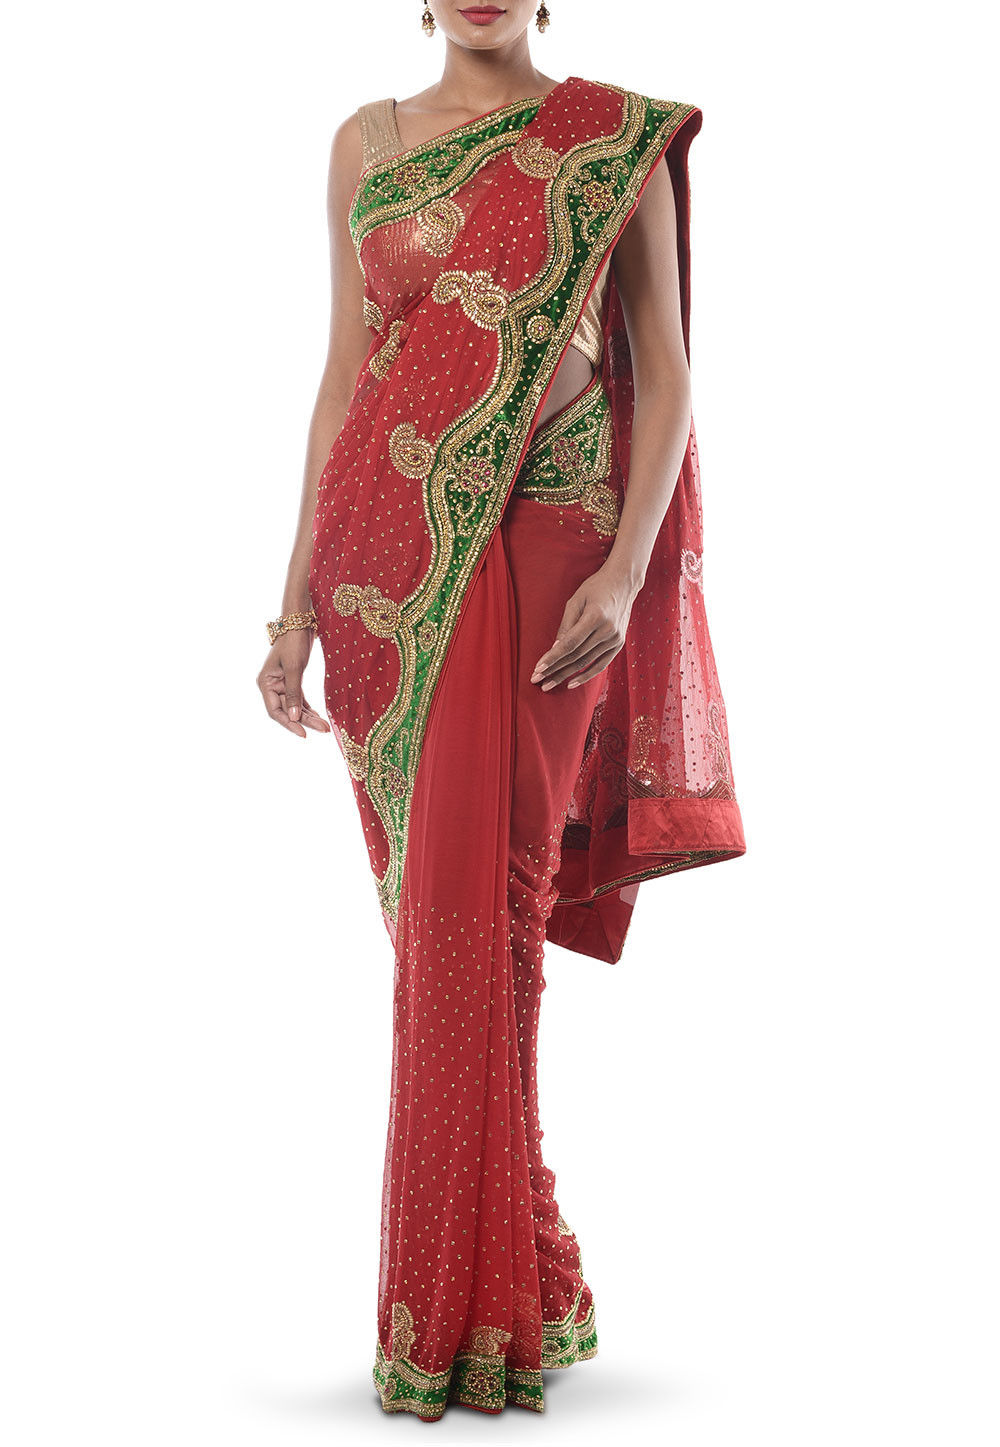 Hand embroidered chiffon saree in red seh